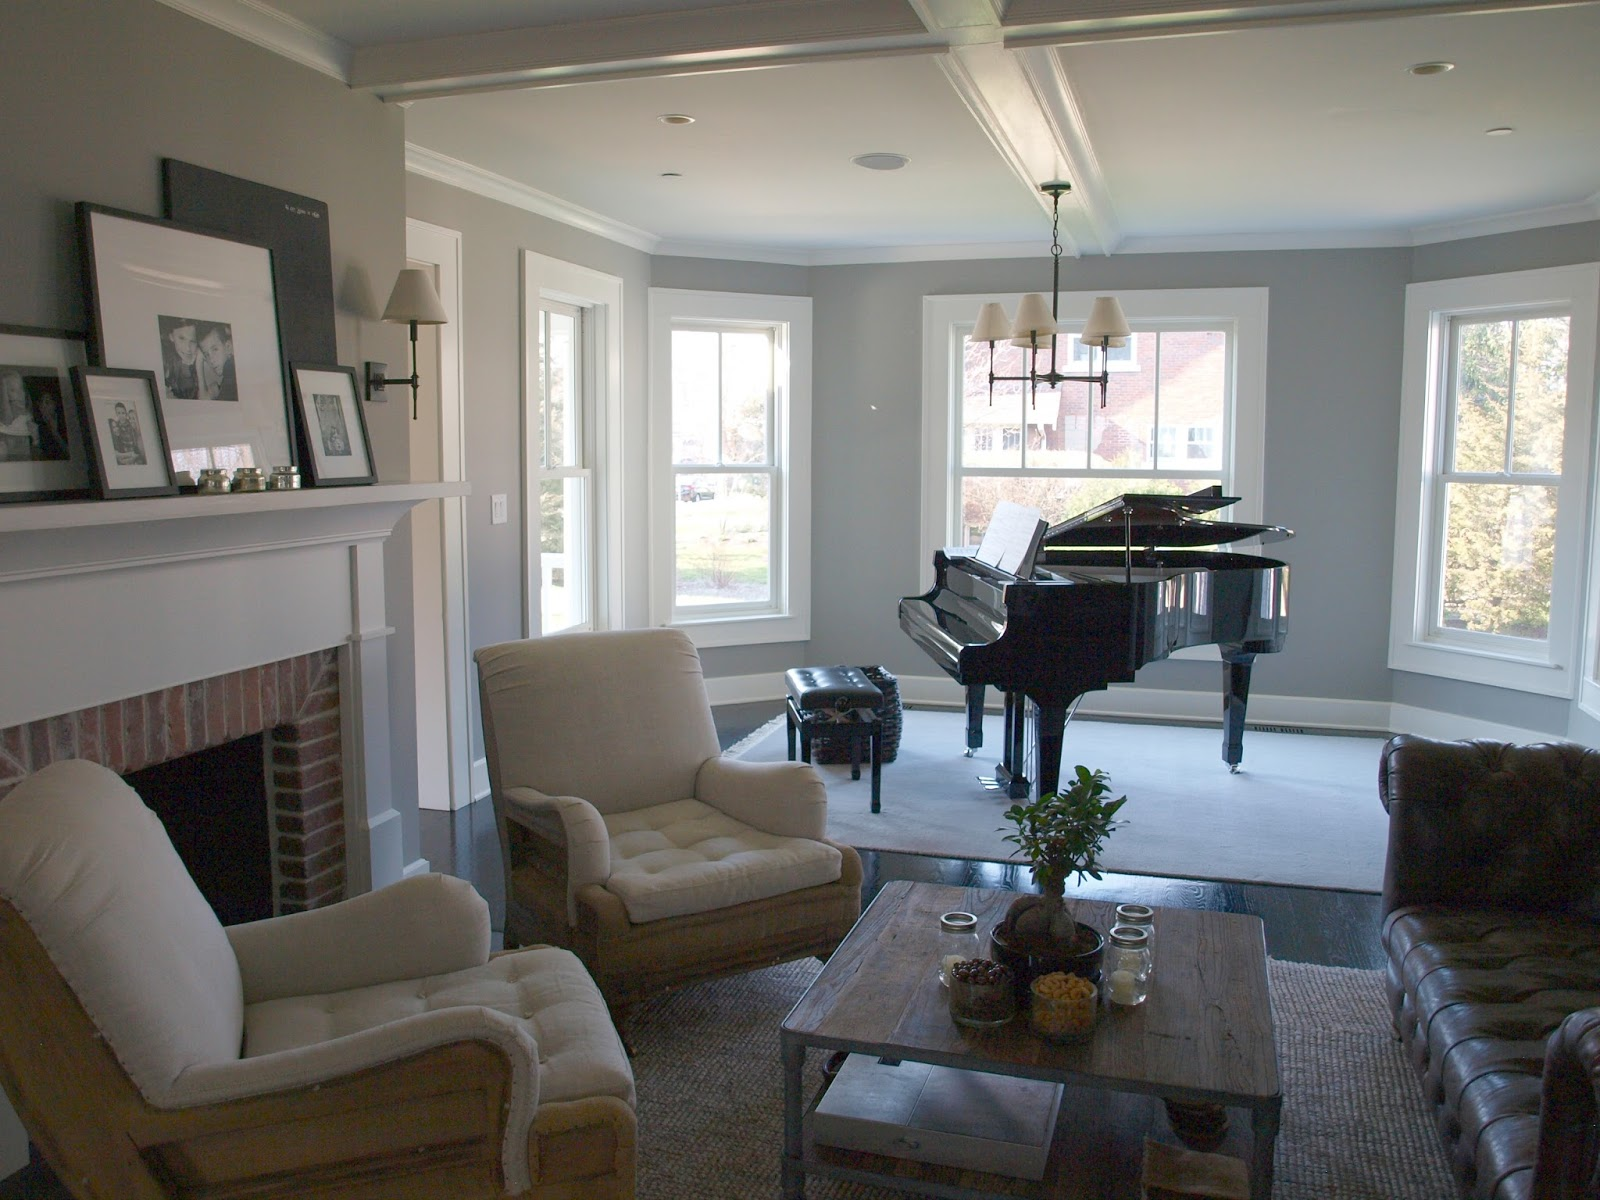 Beautiful modern farmhouse living room with black grand piano - by Hello Lovely Studio